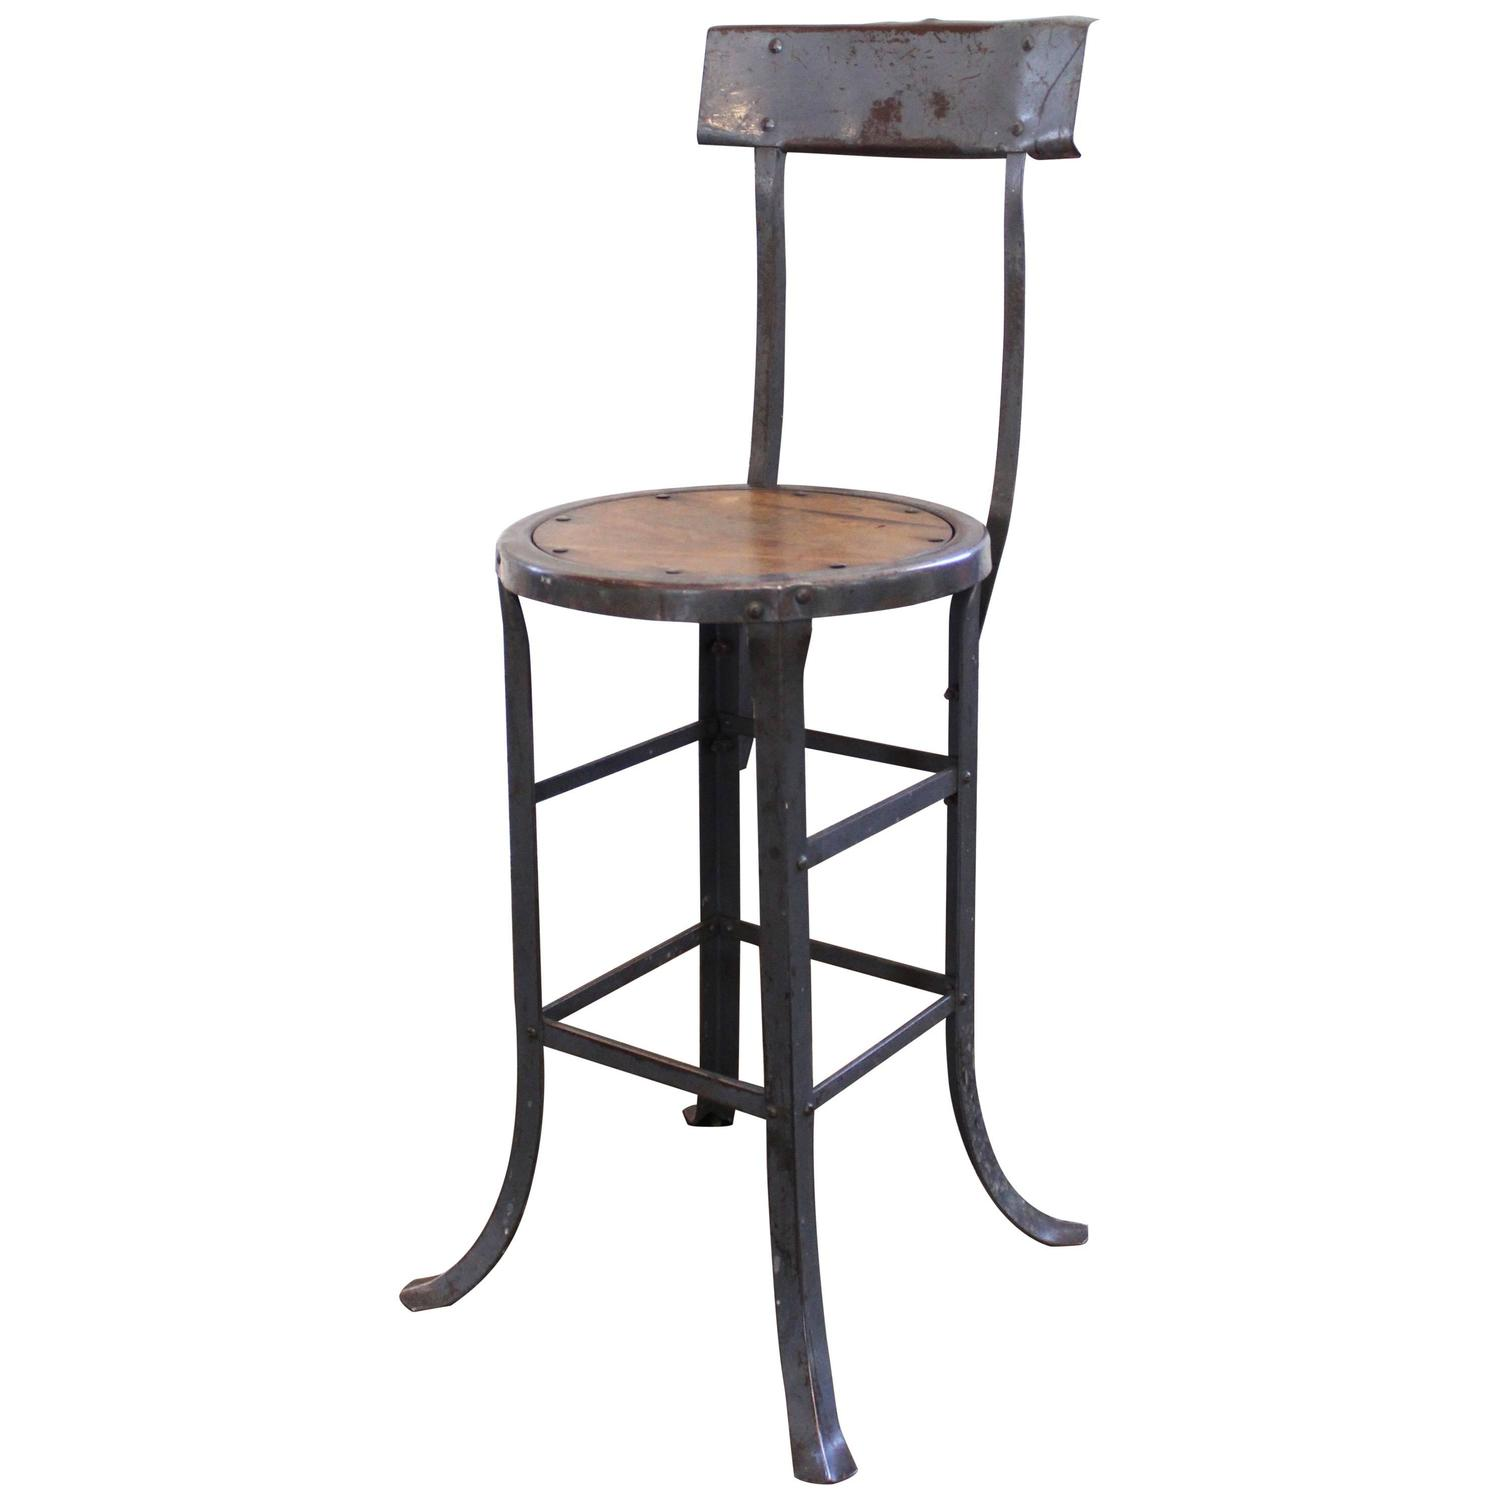 Vintage industrial rustic wood and metal bar kitchen for Bar stools for kitchen islands